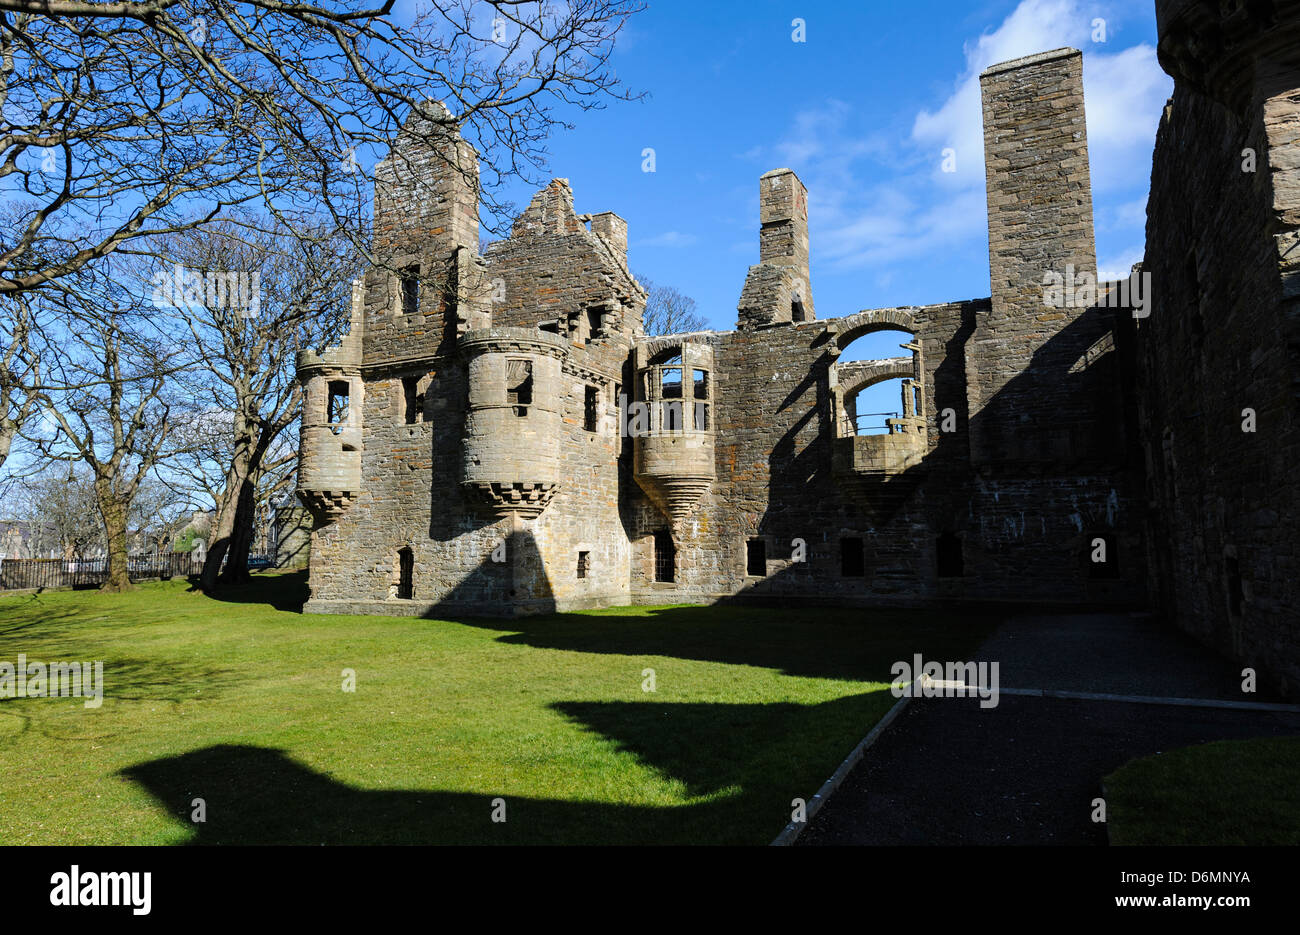 The Earl's Palace, Kirkwall Orkney Scotland - Stock Image